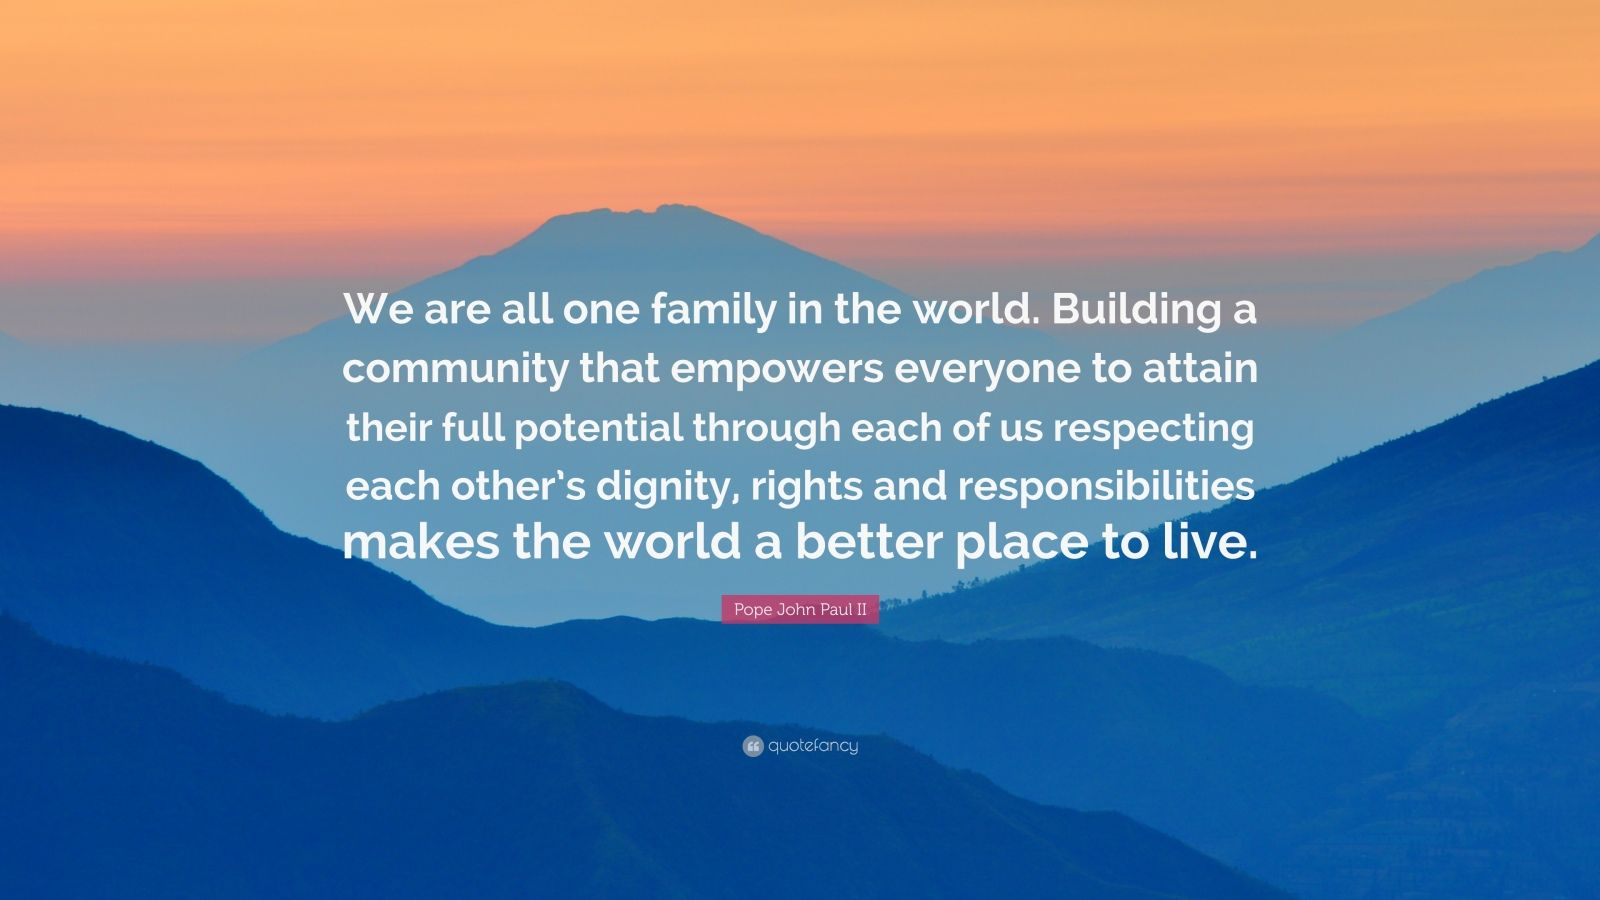 """Pope John Paul II Quote: """"We are all one family in the world. Building a community that empowers everyone to attain their full potential through each of us respecting each other's dignity, rights and responsibilities makes the world a better place to live."""""""